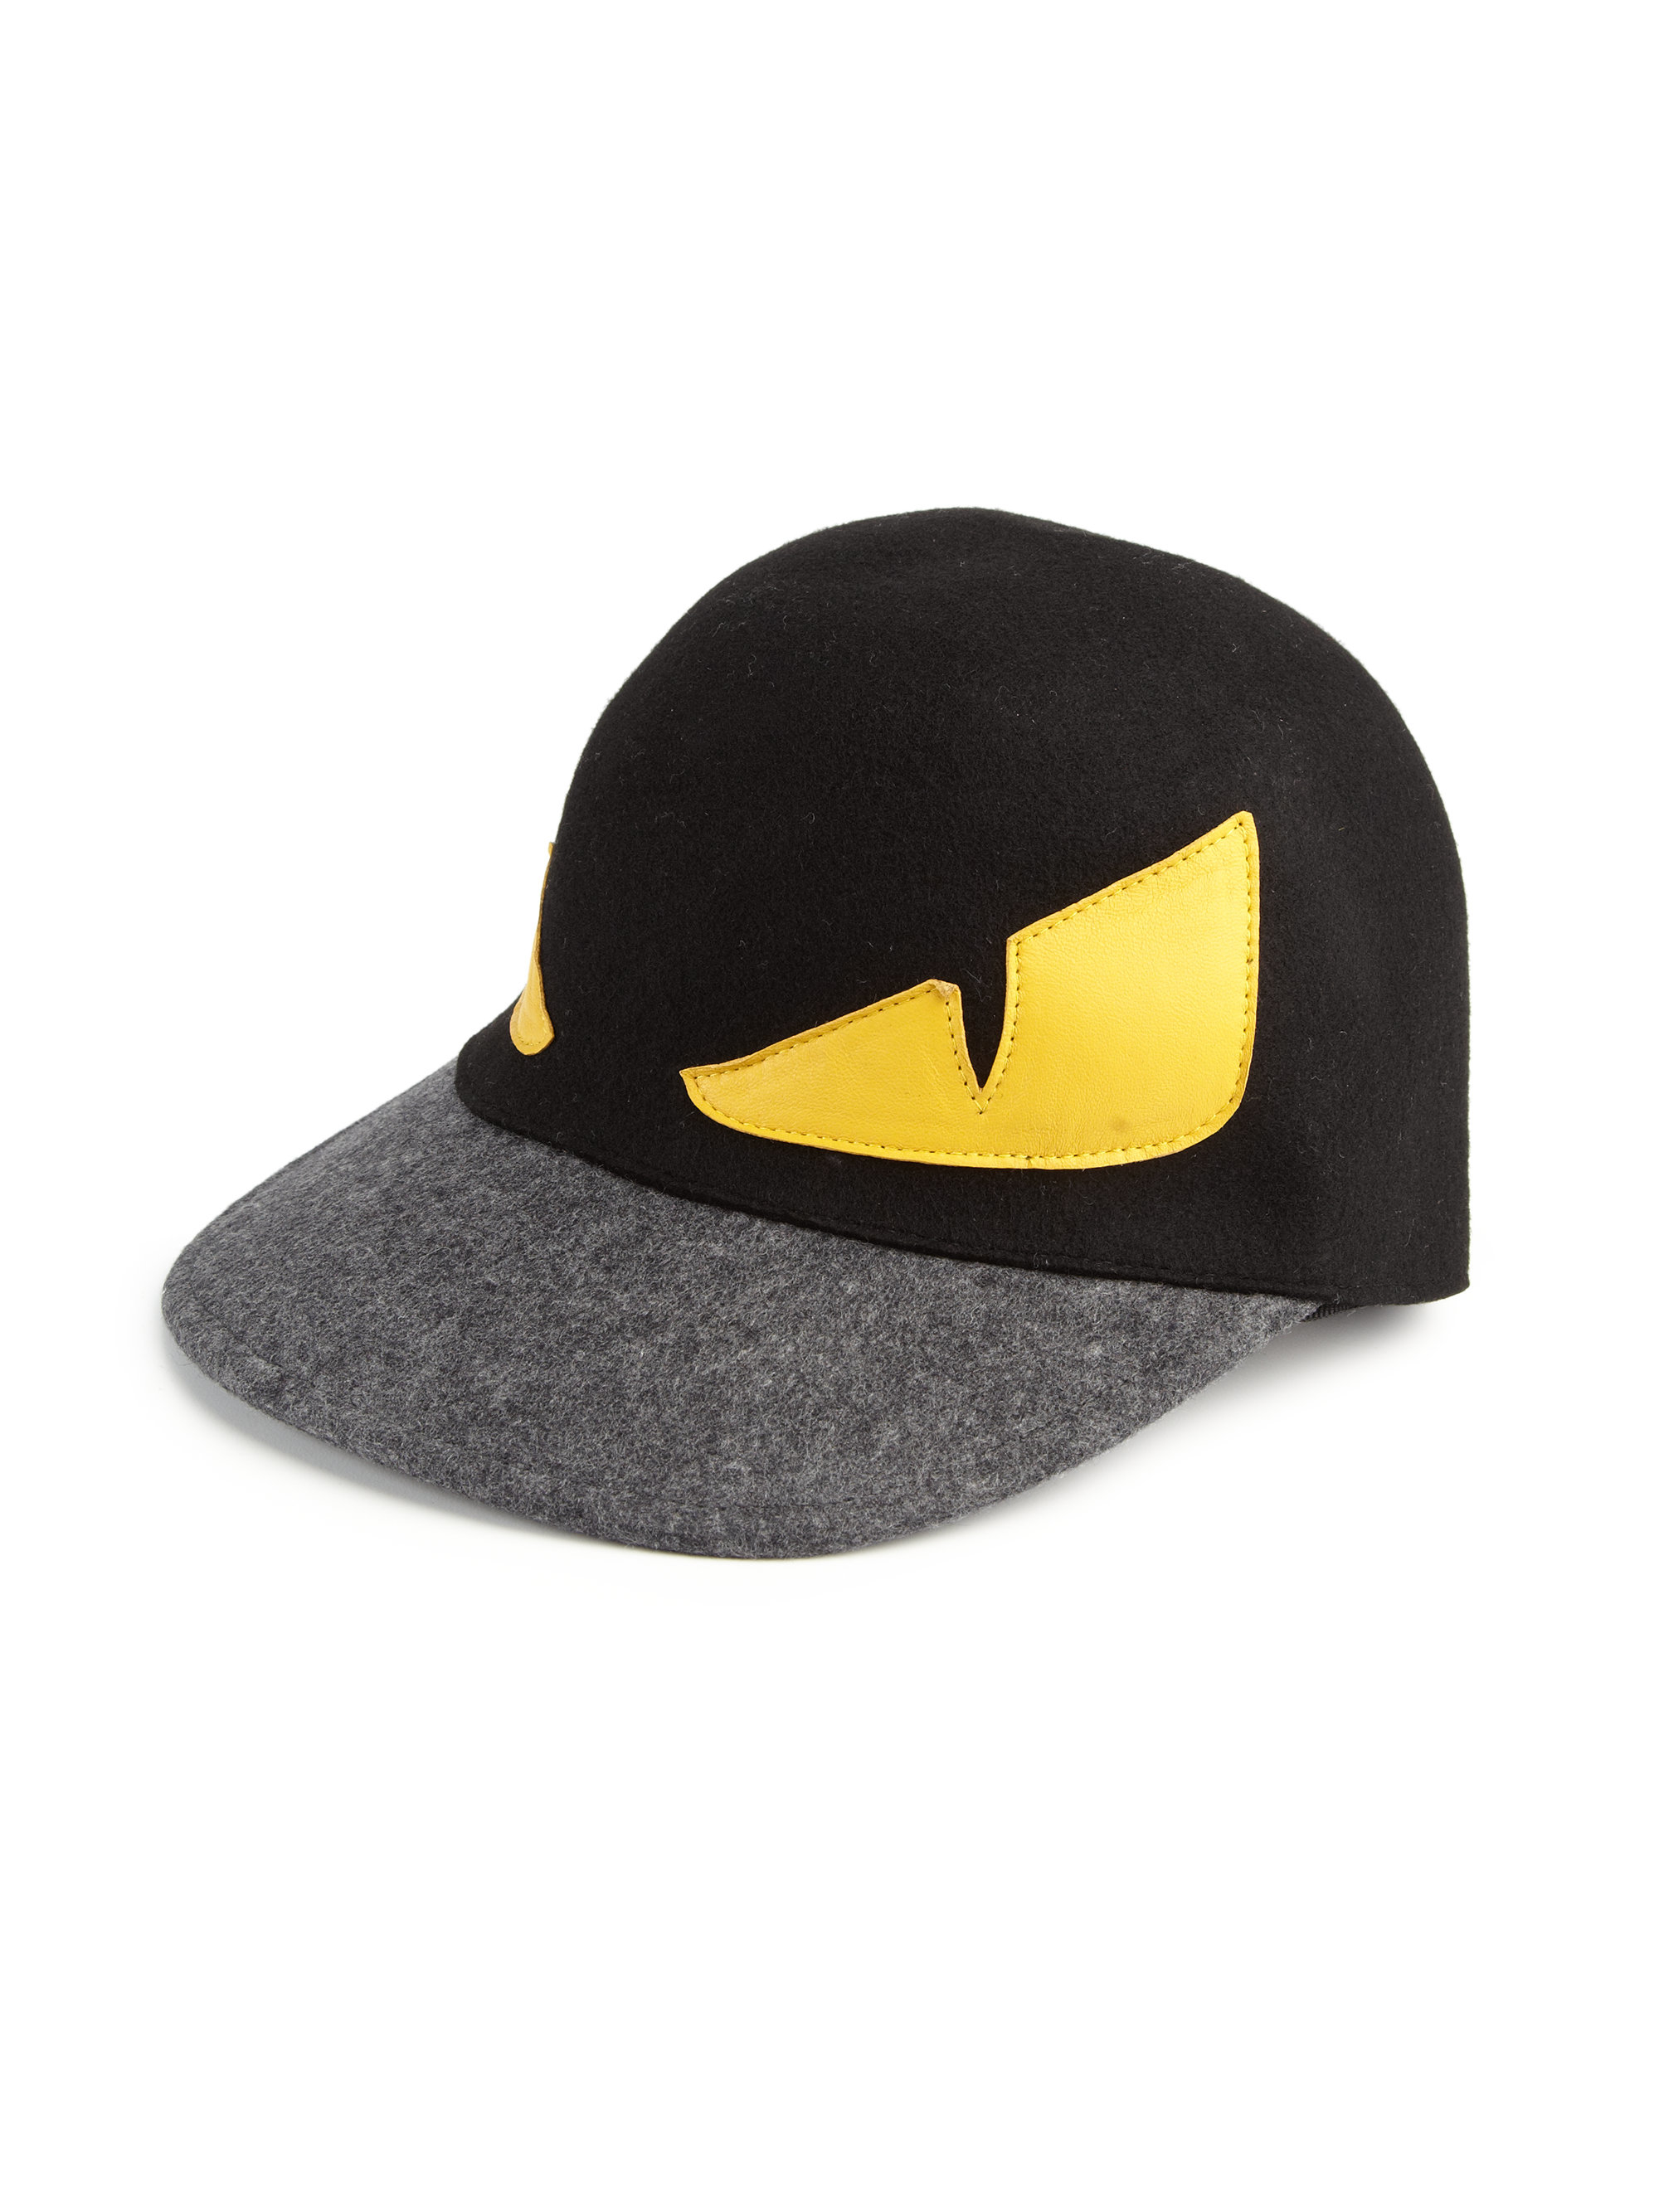 Fendi Monster Wool Baseball Cap In Black For Men Lyst